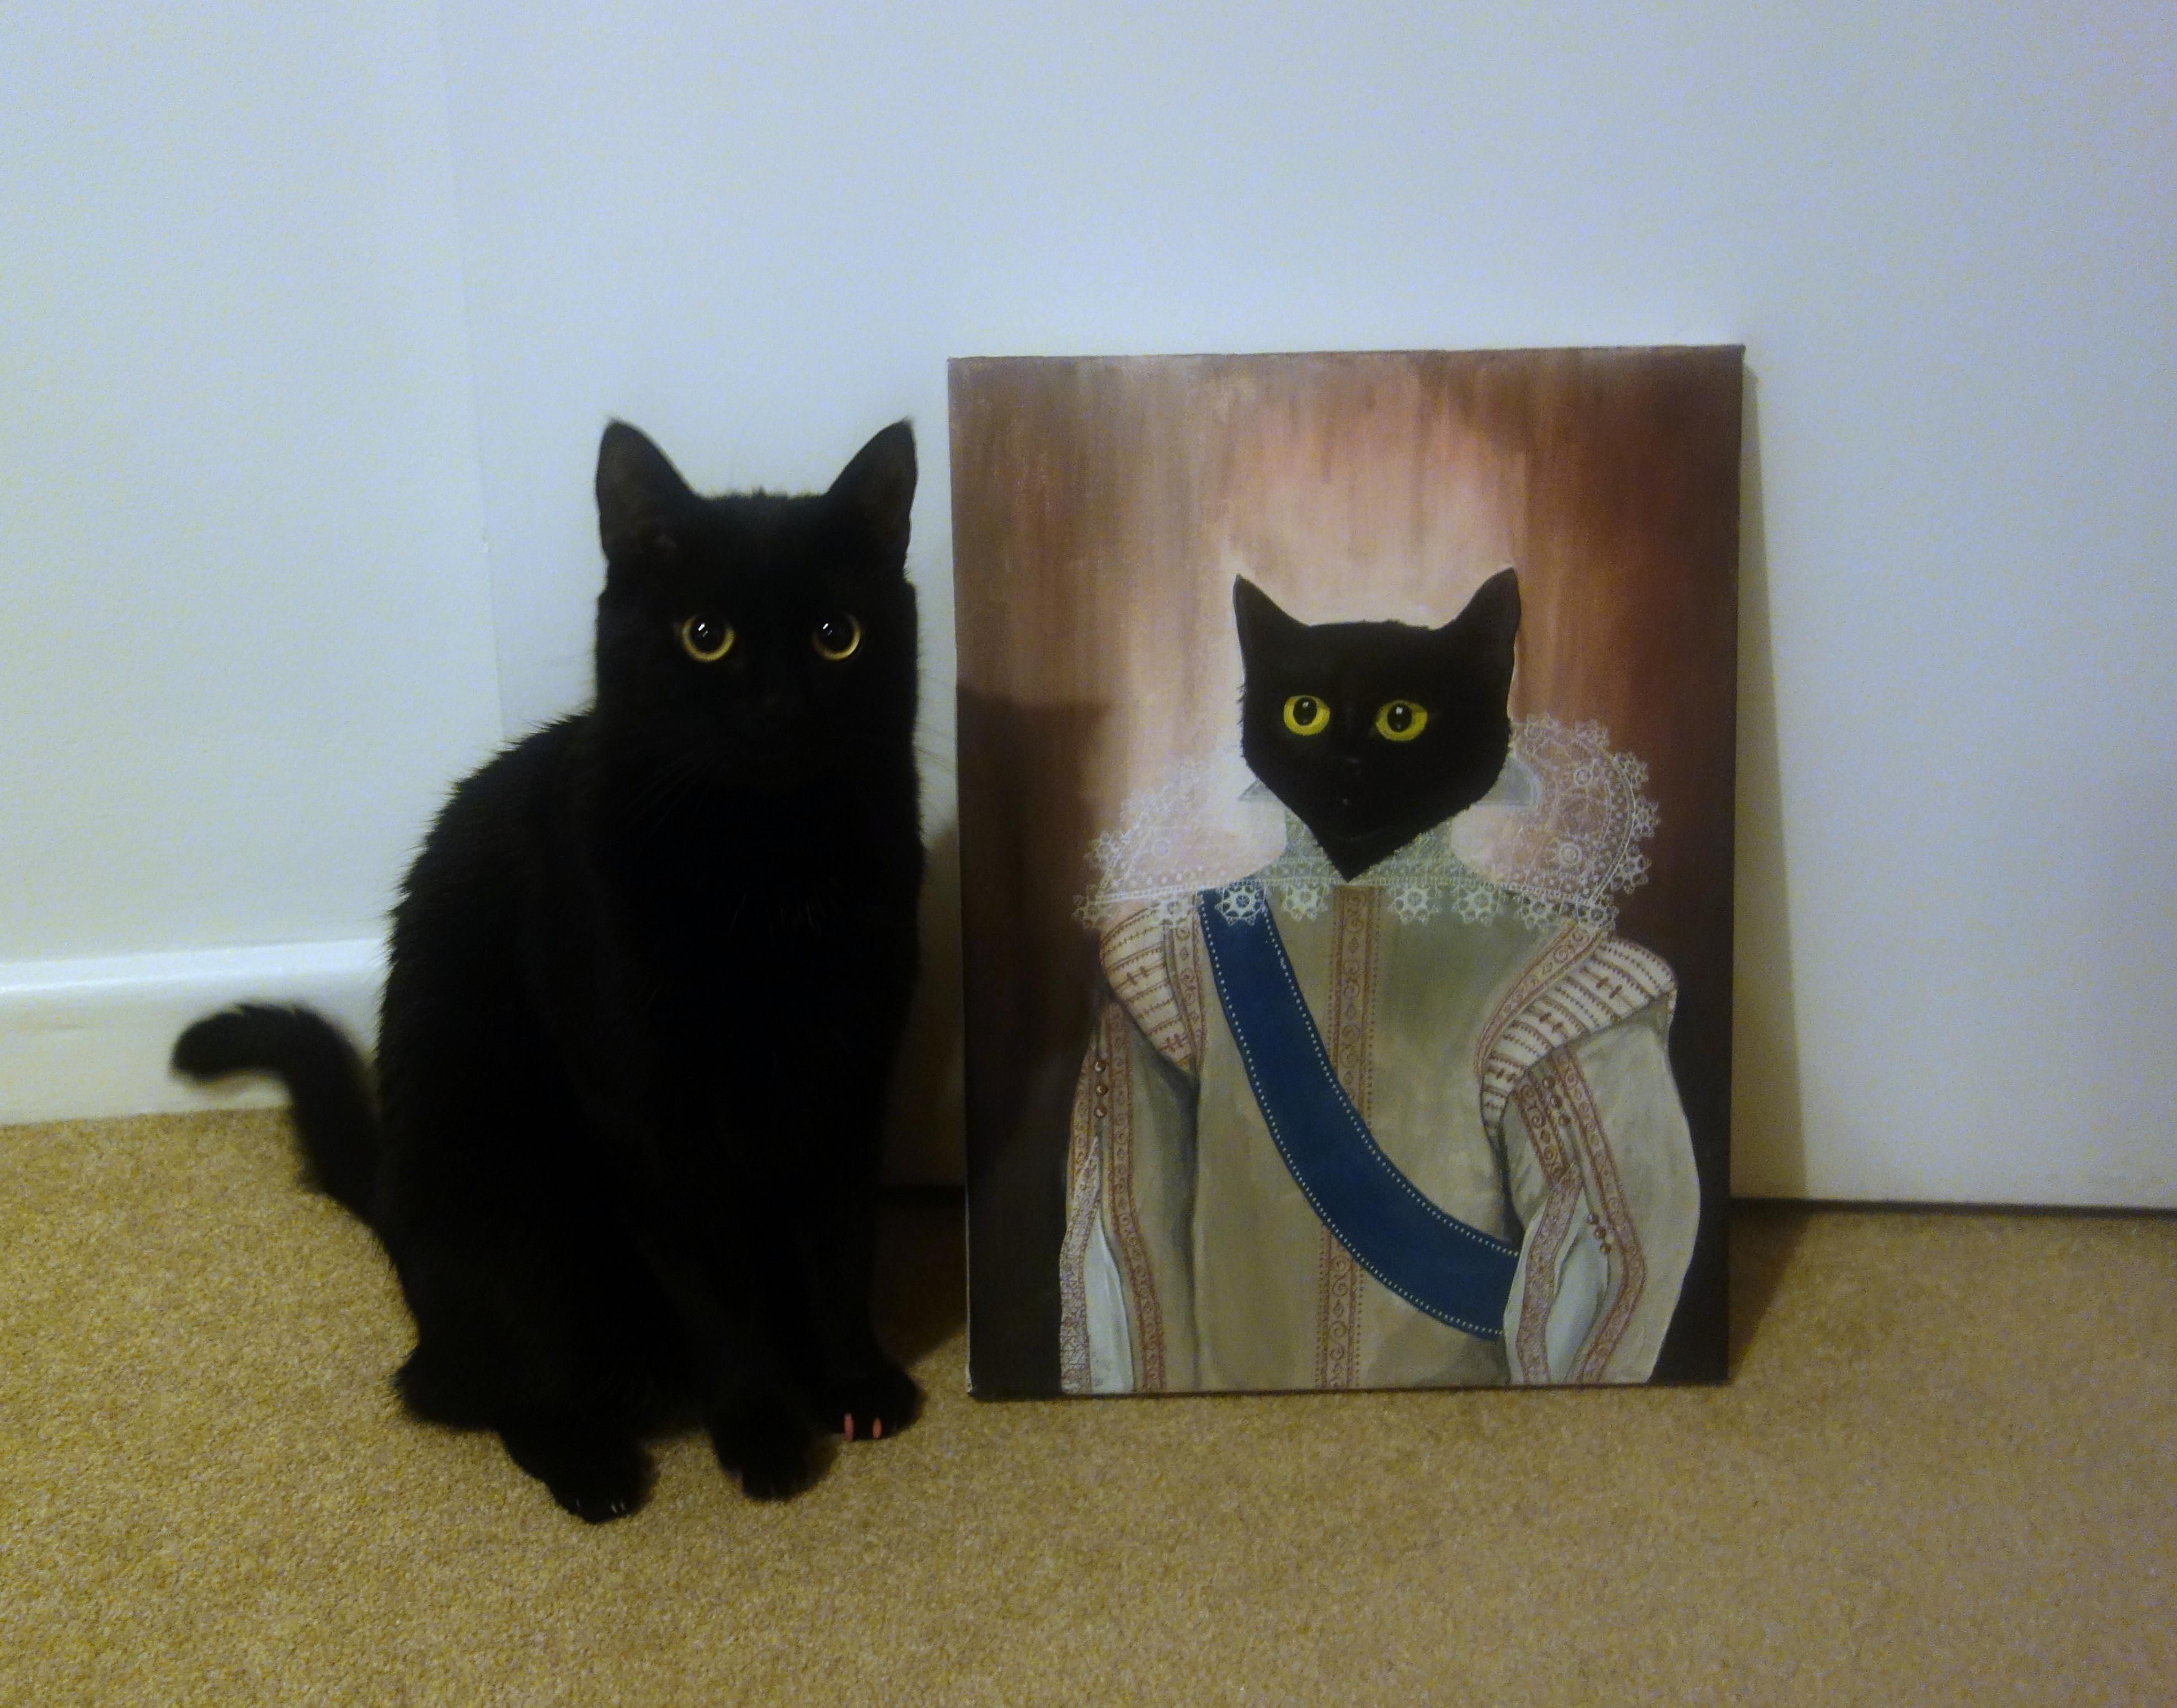 I made a painting of my cat (x-post from /r/blackcats)